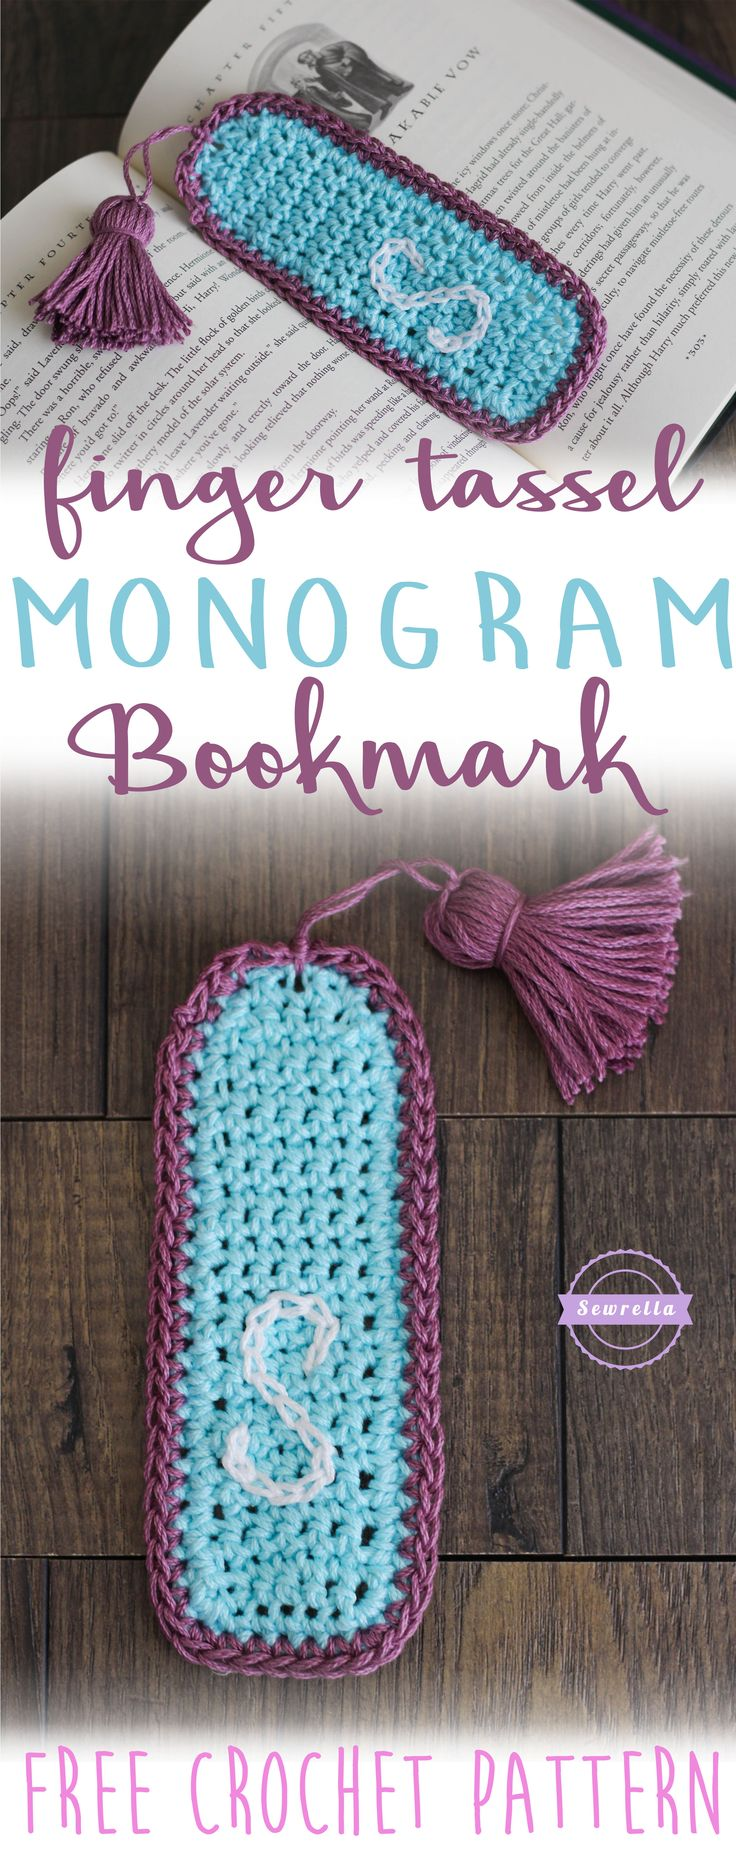 Finger Tassel Tutorial & Monogram Bookmark | Free Crochet Pattern from Sewrella